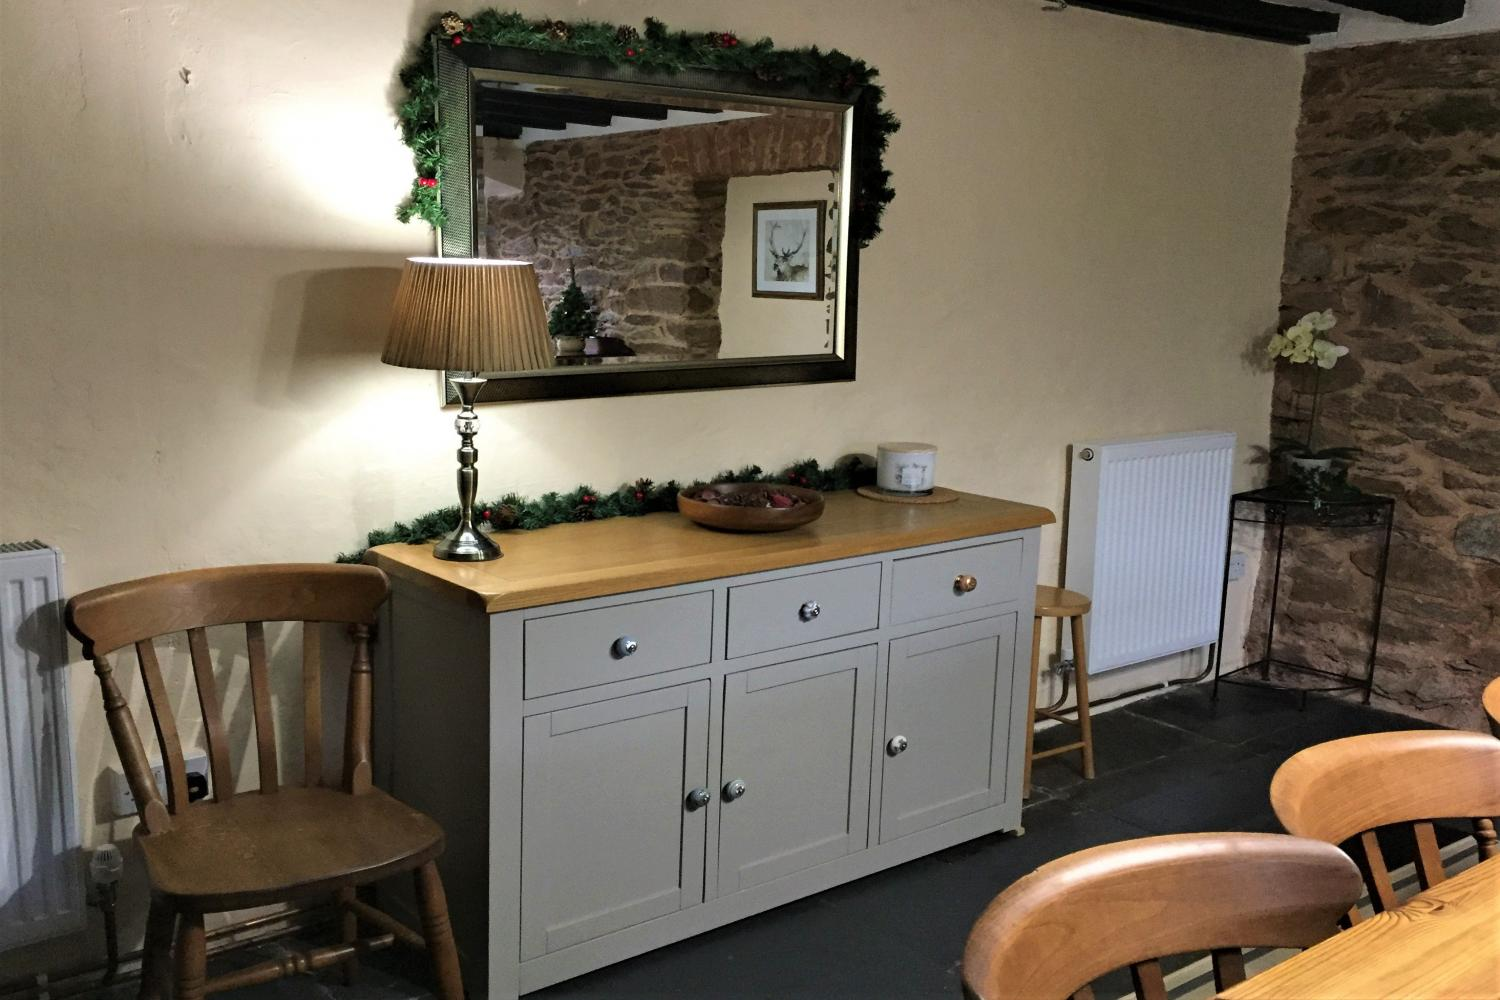 Christmas - Sideboard in dining room